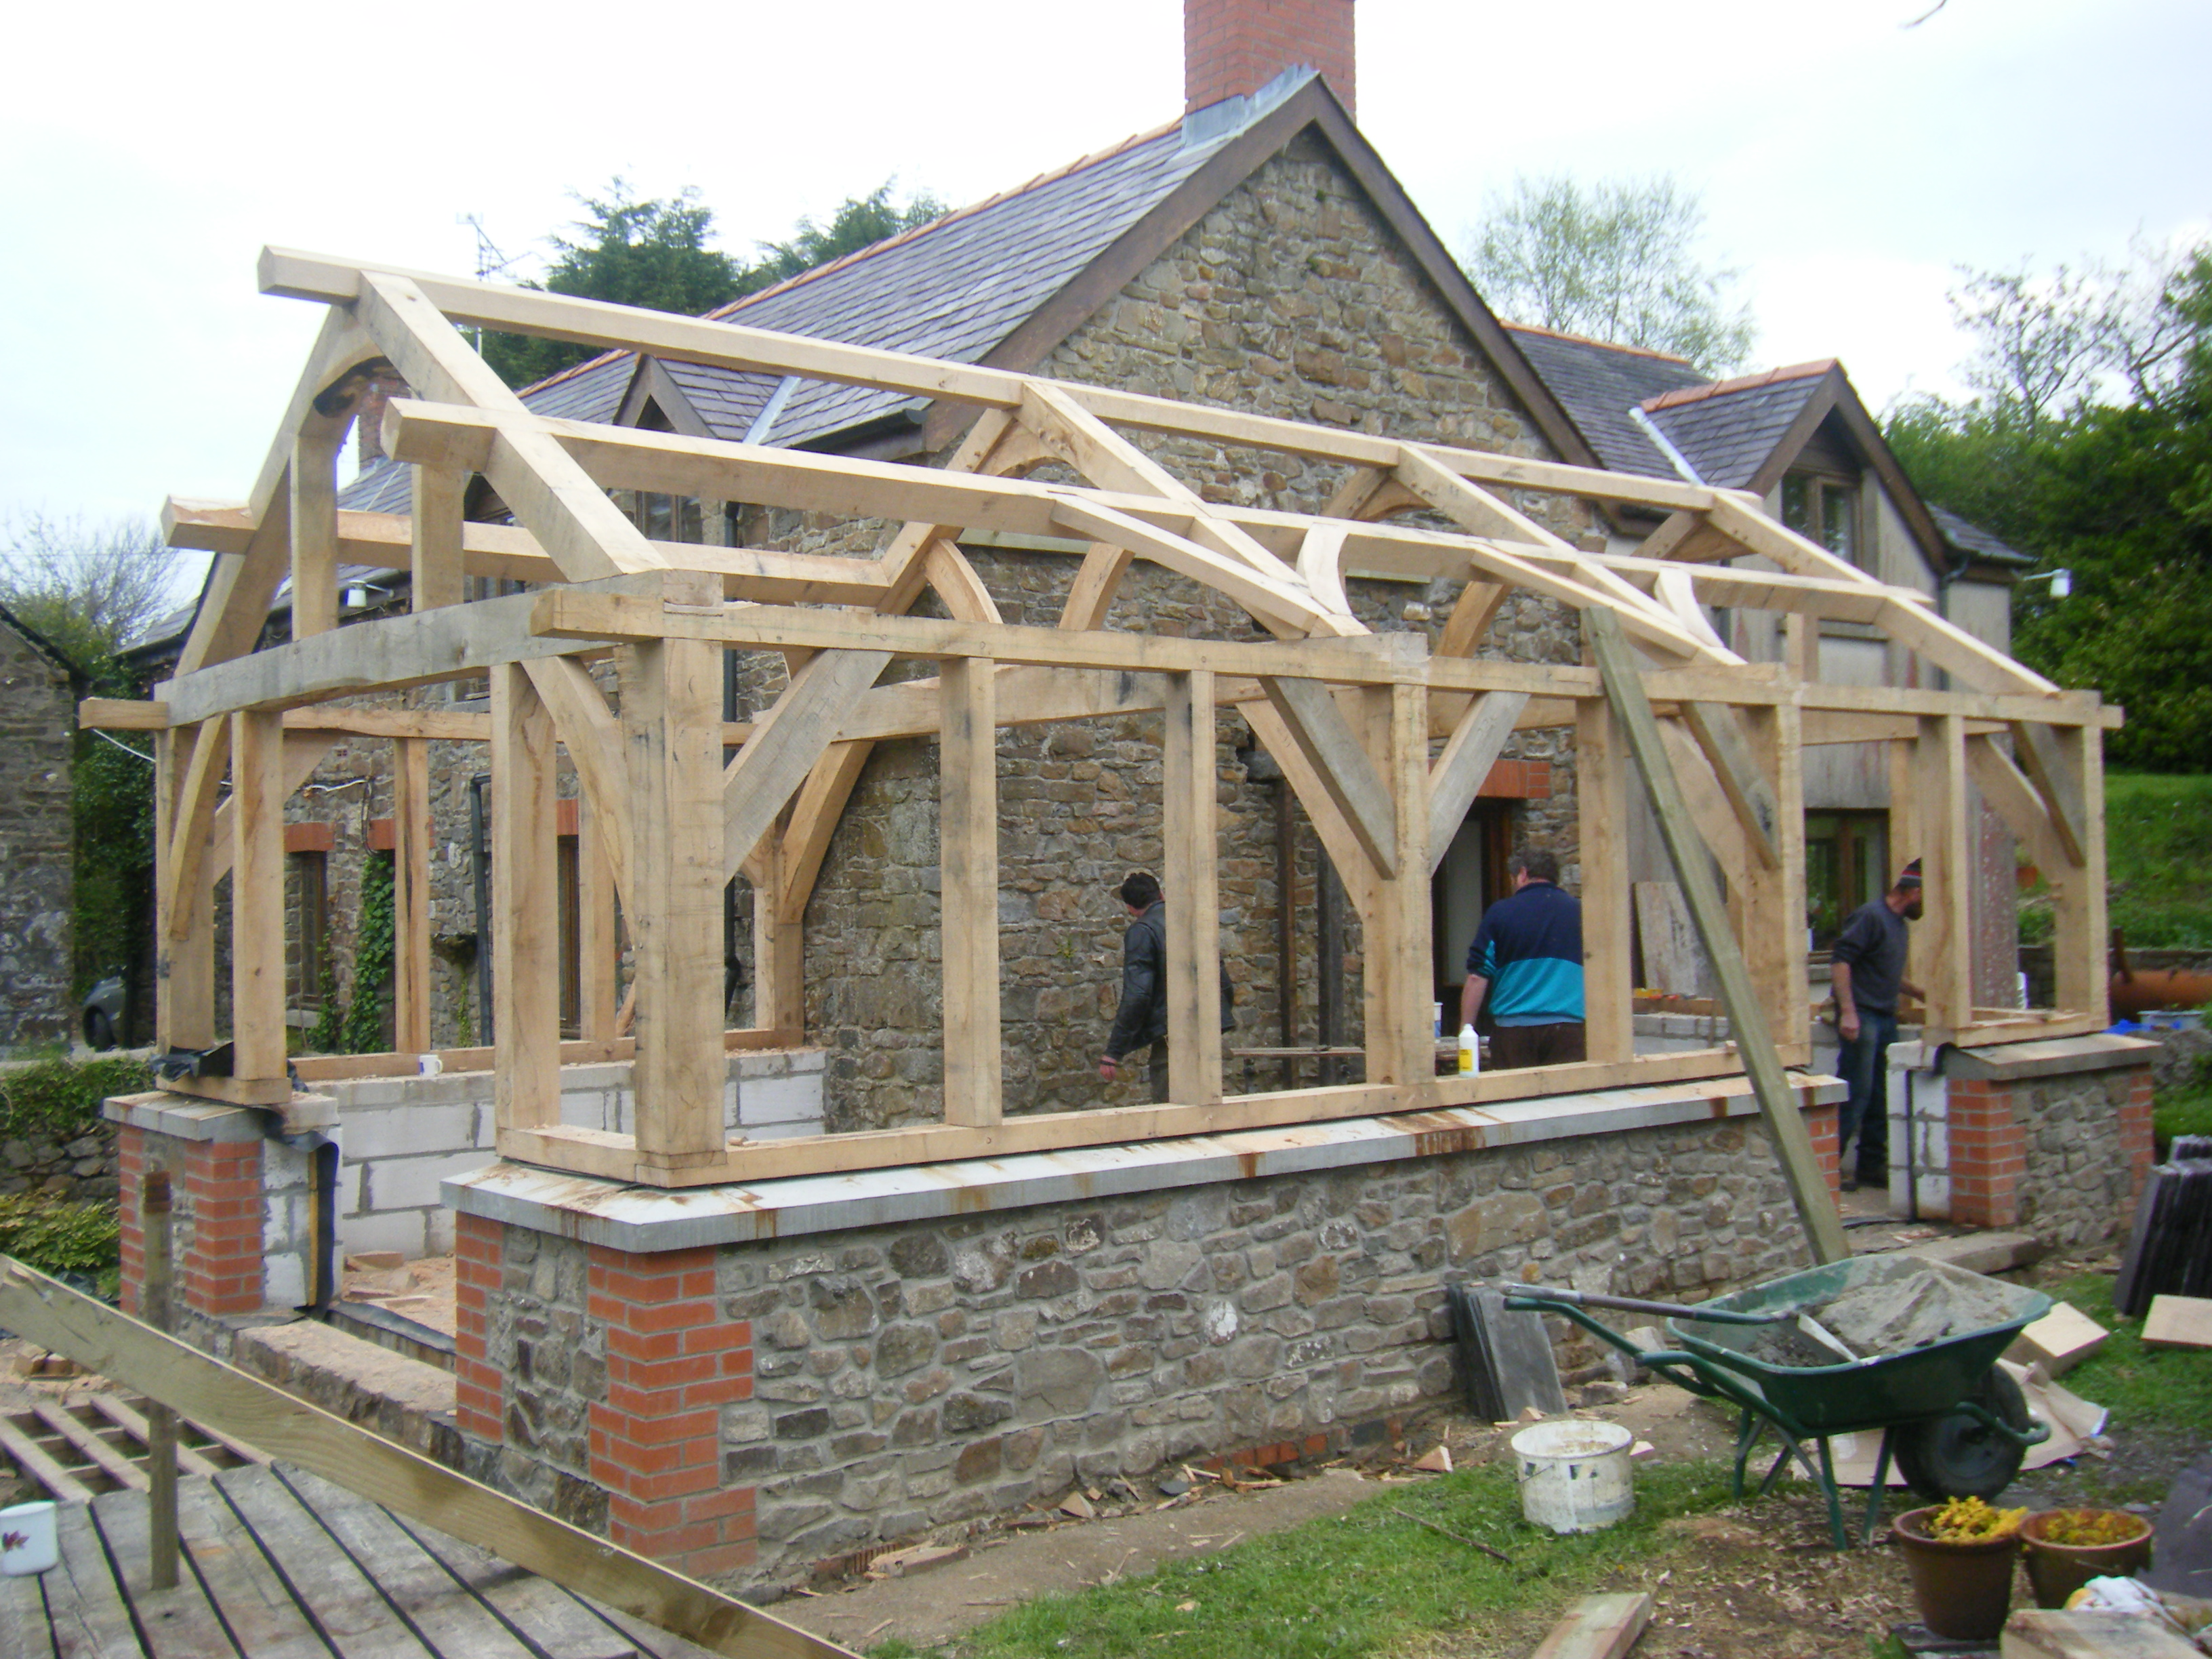 Timber framing gregors wood yard for House plans timber frame construction